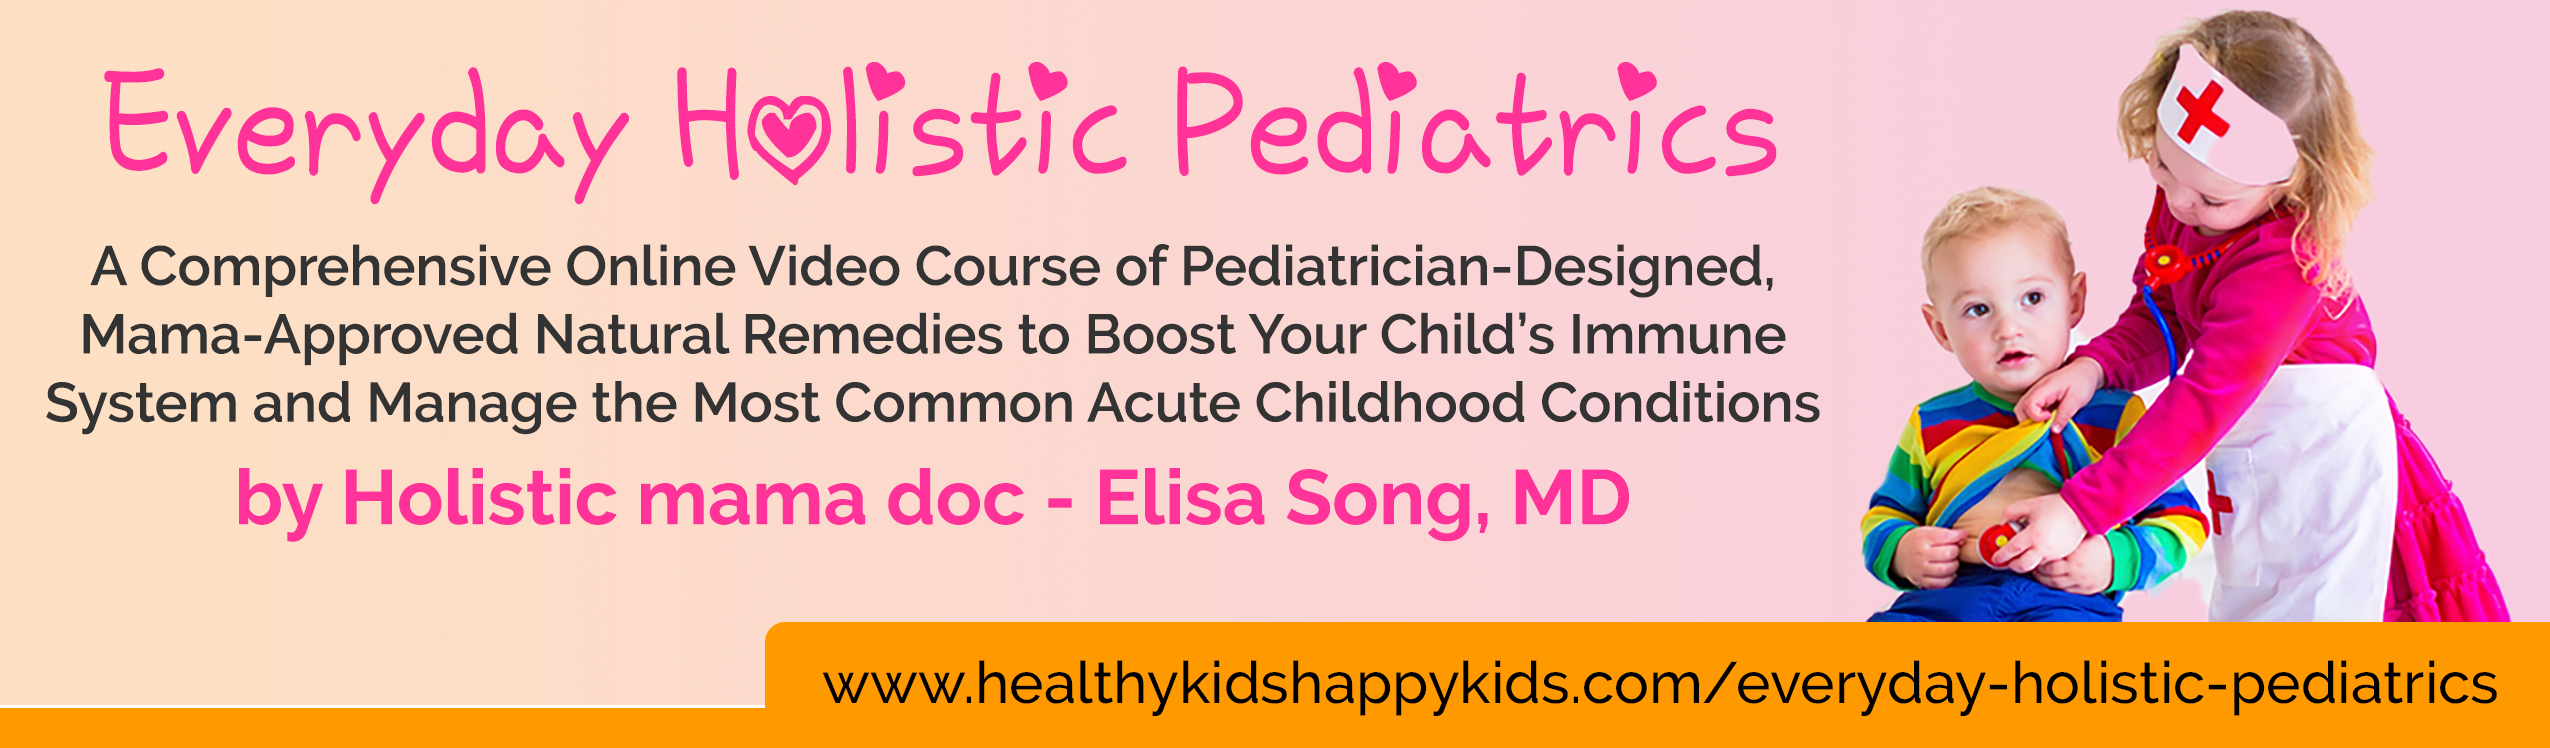 Everyday Holistic Pediatrics